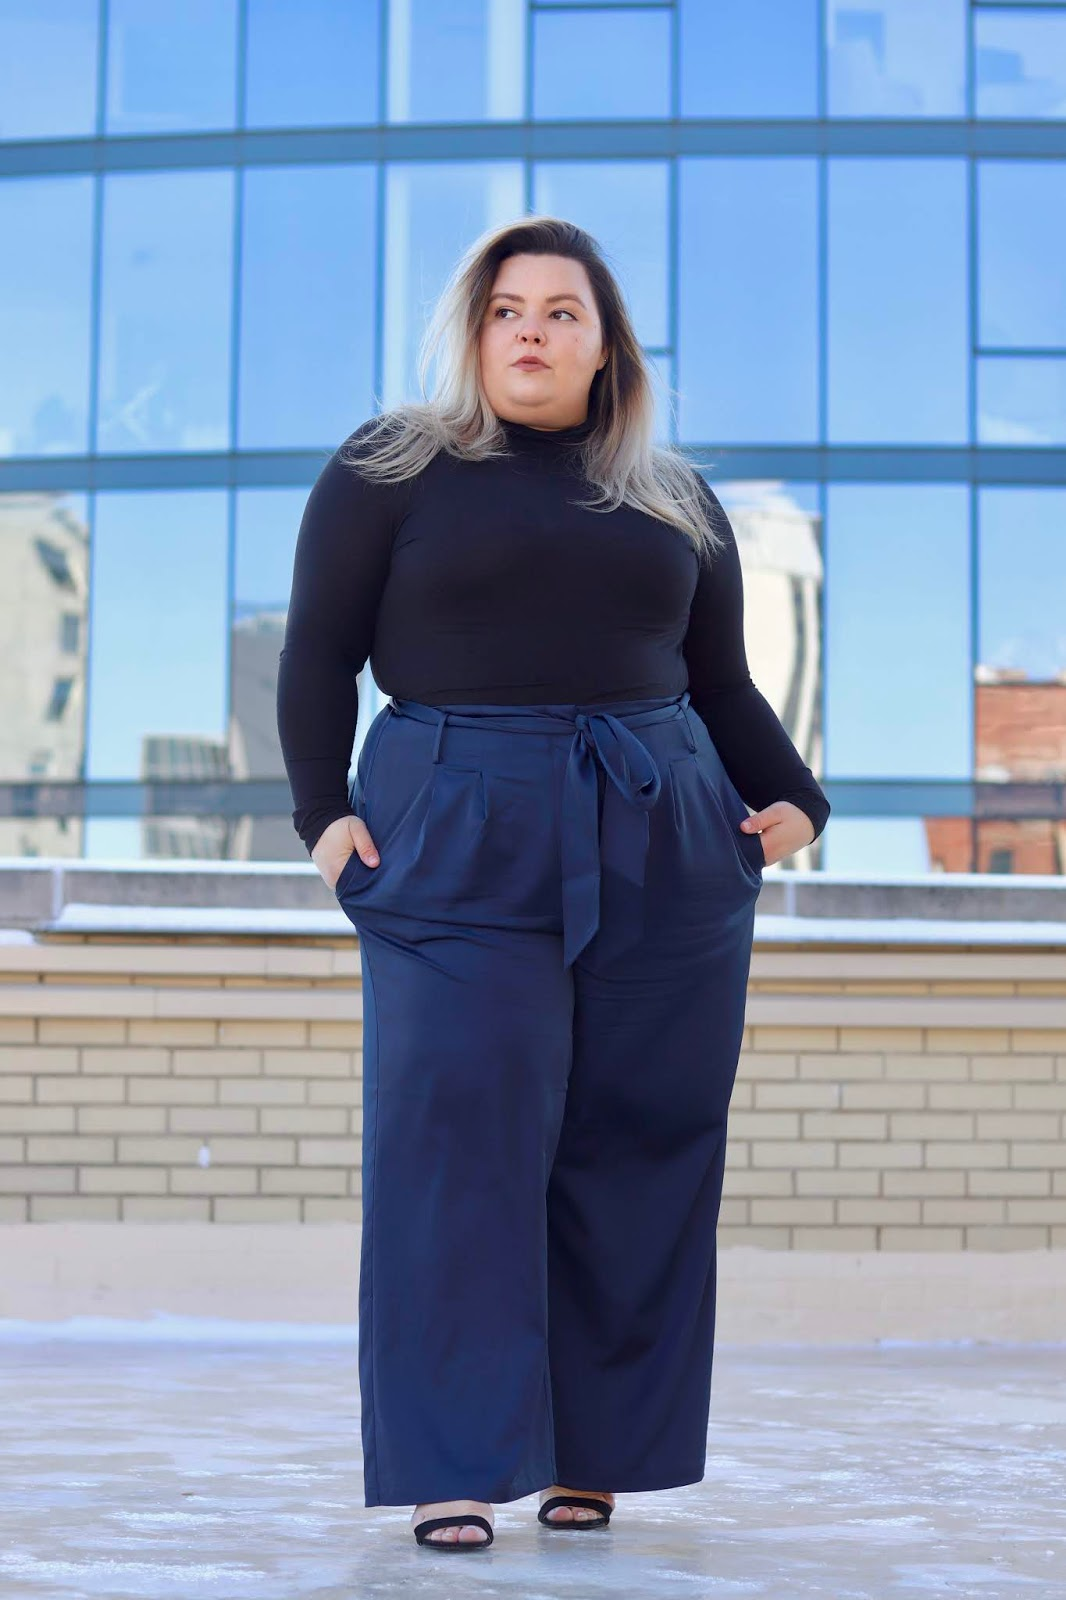 Chicago Plus Size Petite Fashion Blogger, influencer, YouTuber, and model Natalie Craig, of Natalie in the City, reviews Universal Standard's plus size petite wide leg satin pants and turtle necks.